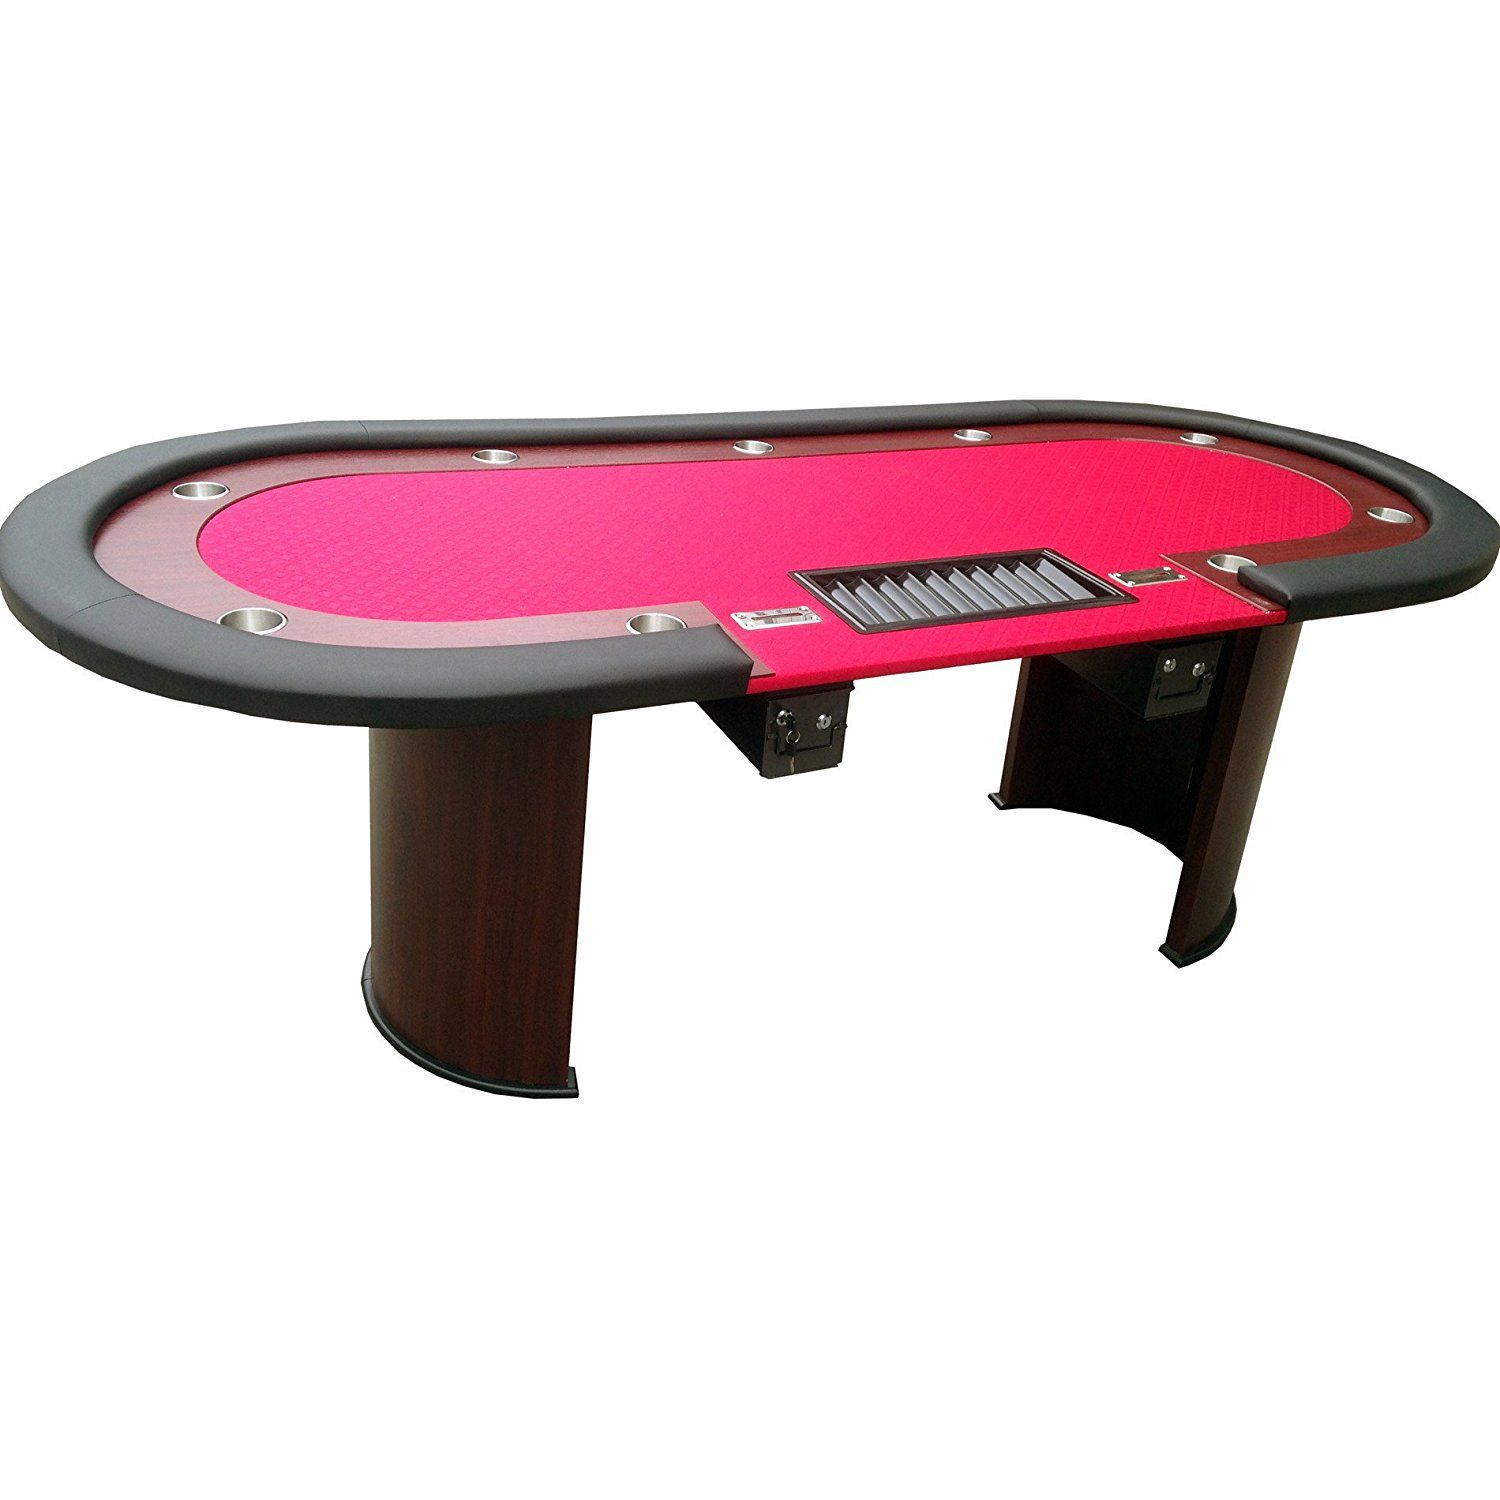 Professional Solid Wood Poker Table 10 Players Dining Top With One Steel Toke Drop Box Best Poker Table 96 X 43